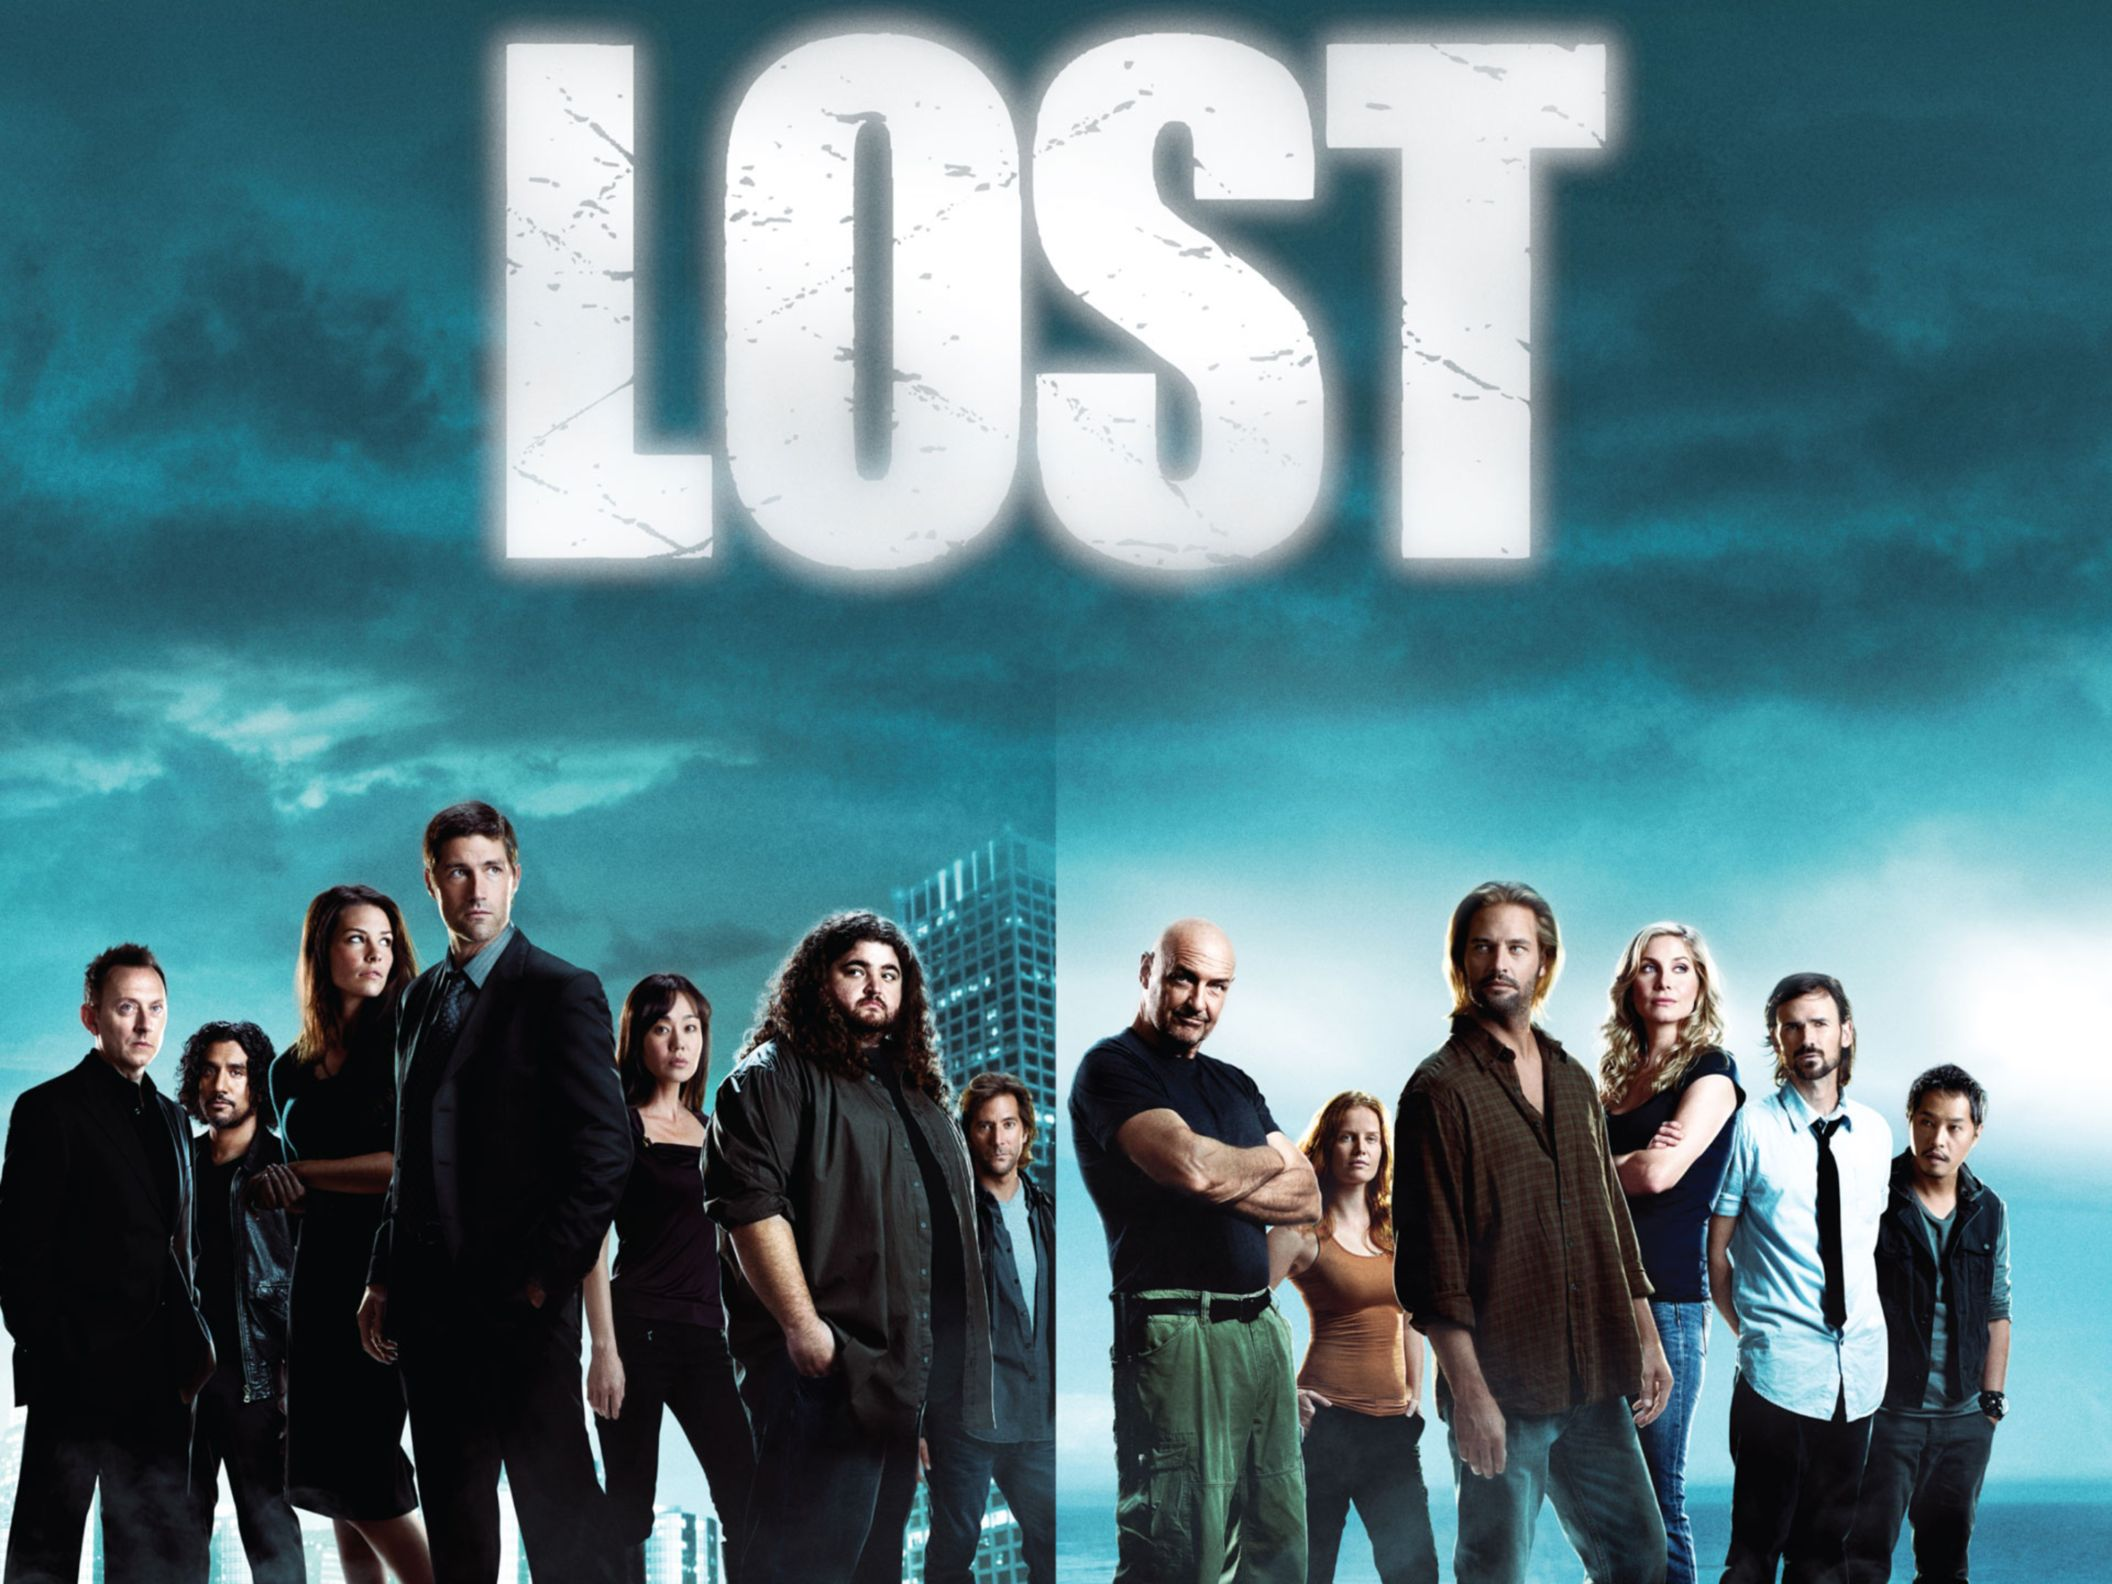 lost tv series 2010 normal wallpaper: desktop hd wallpaper